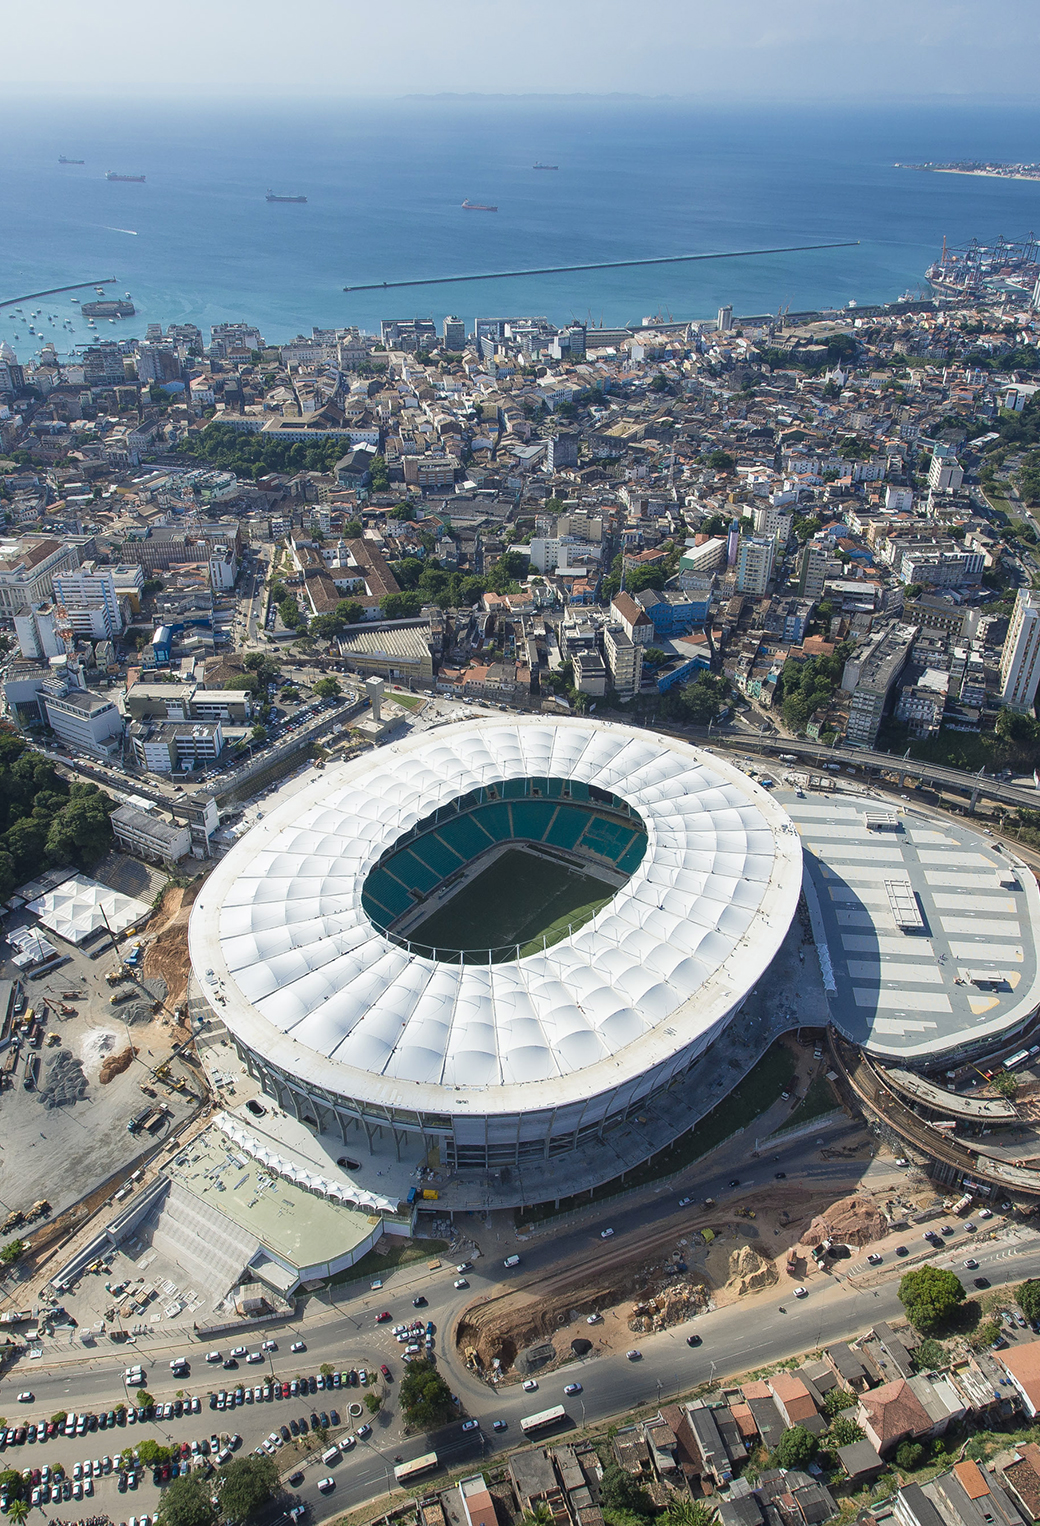 Games Arena World Cup in Brazil 2014 3Wallpapers iPhone parallax Games Arena World Cup in Brazil 2014